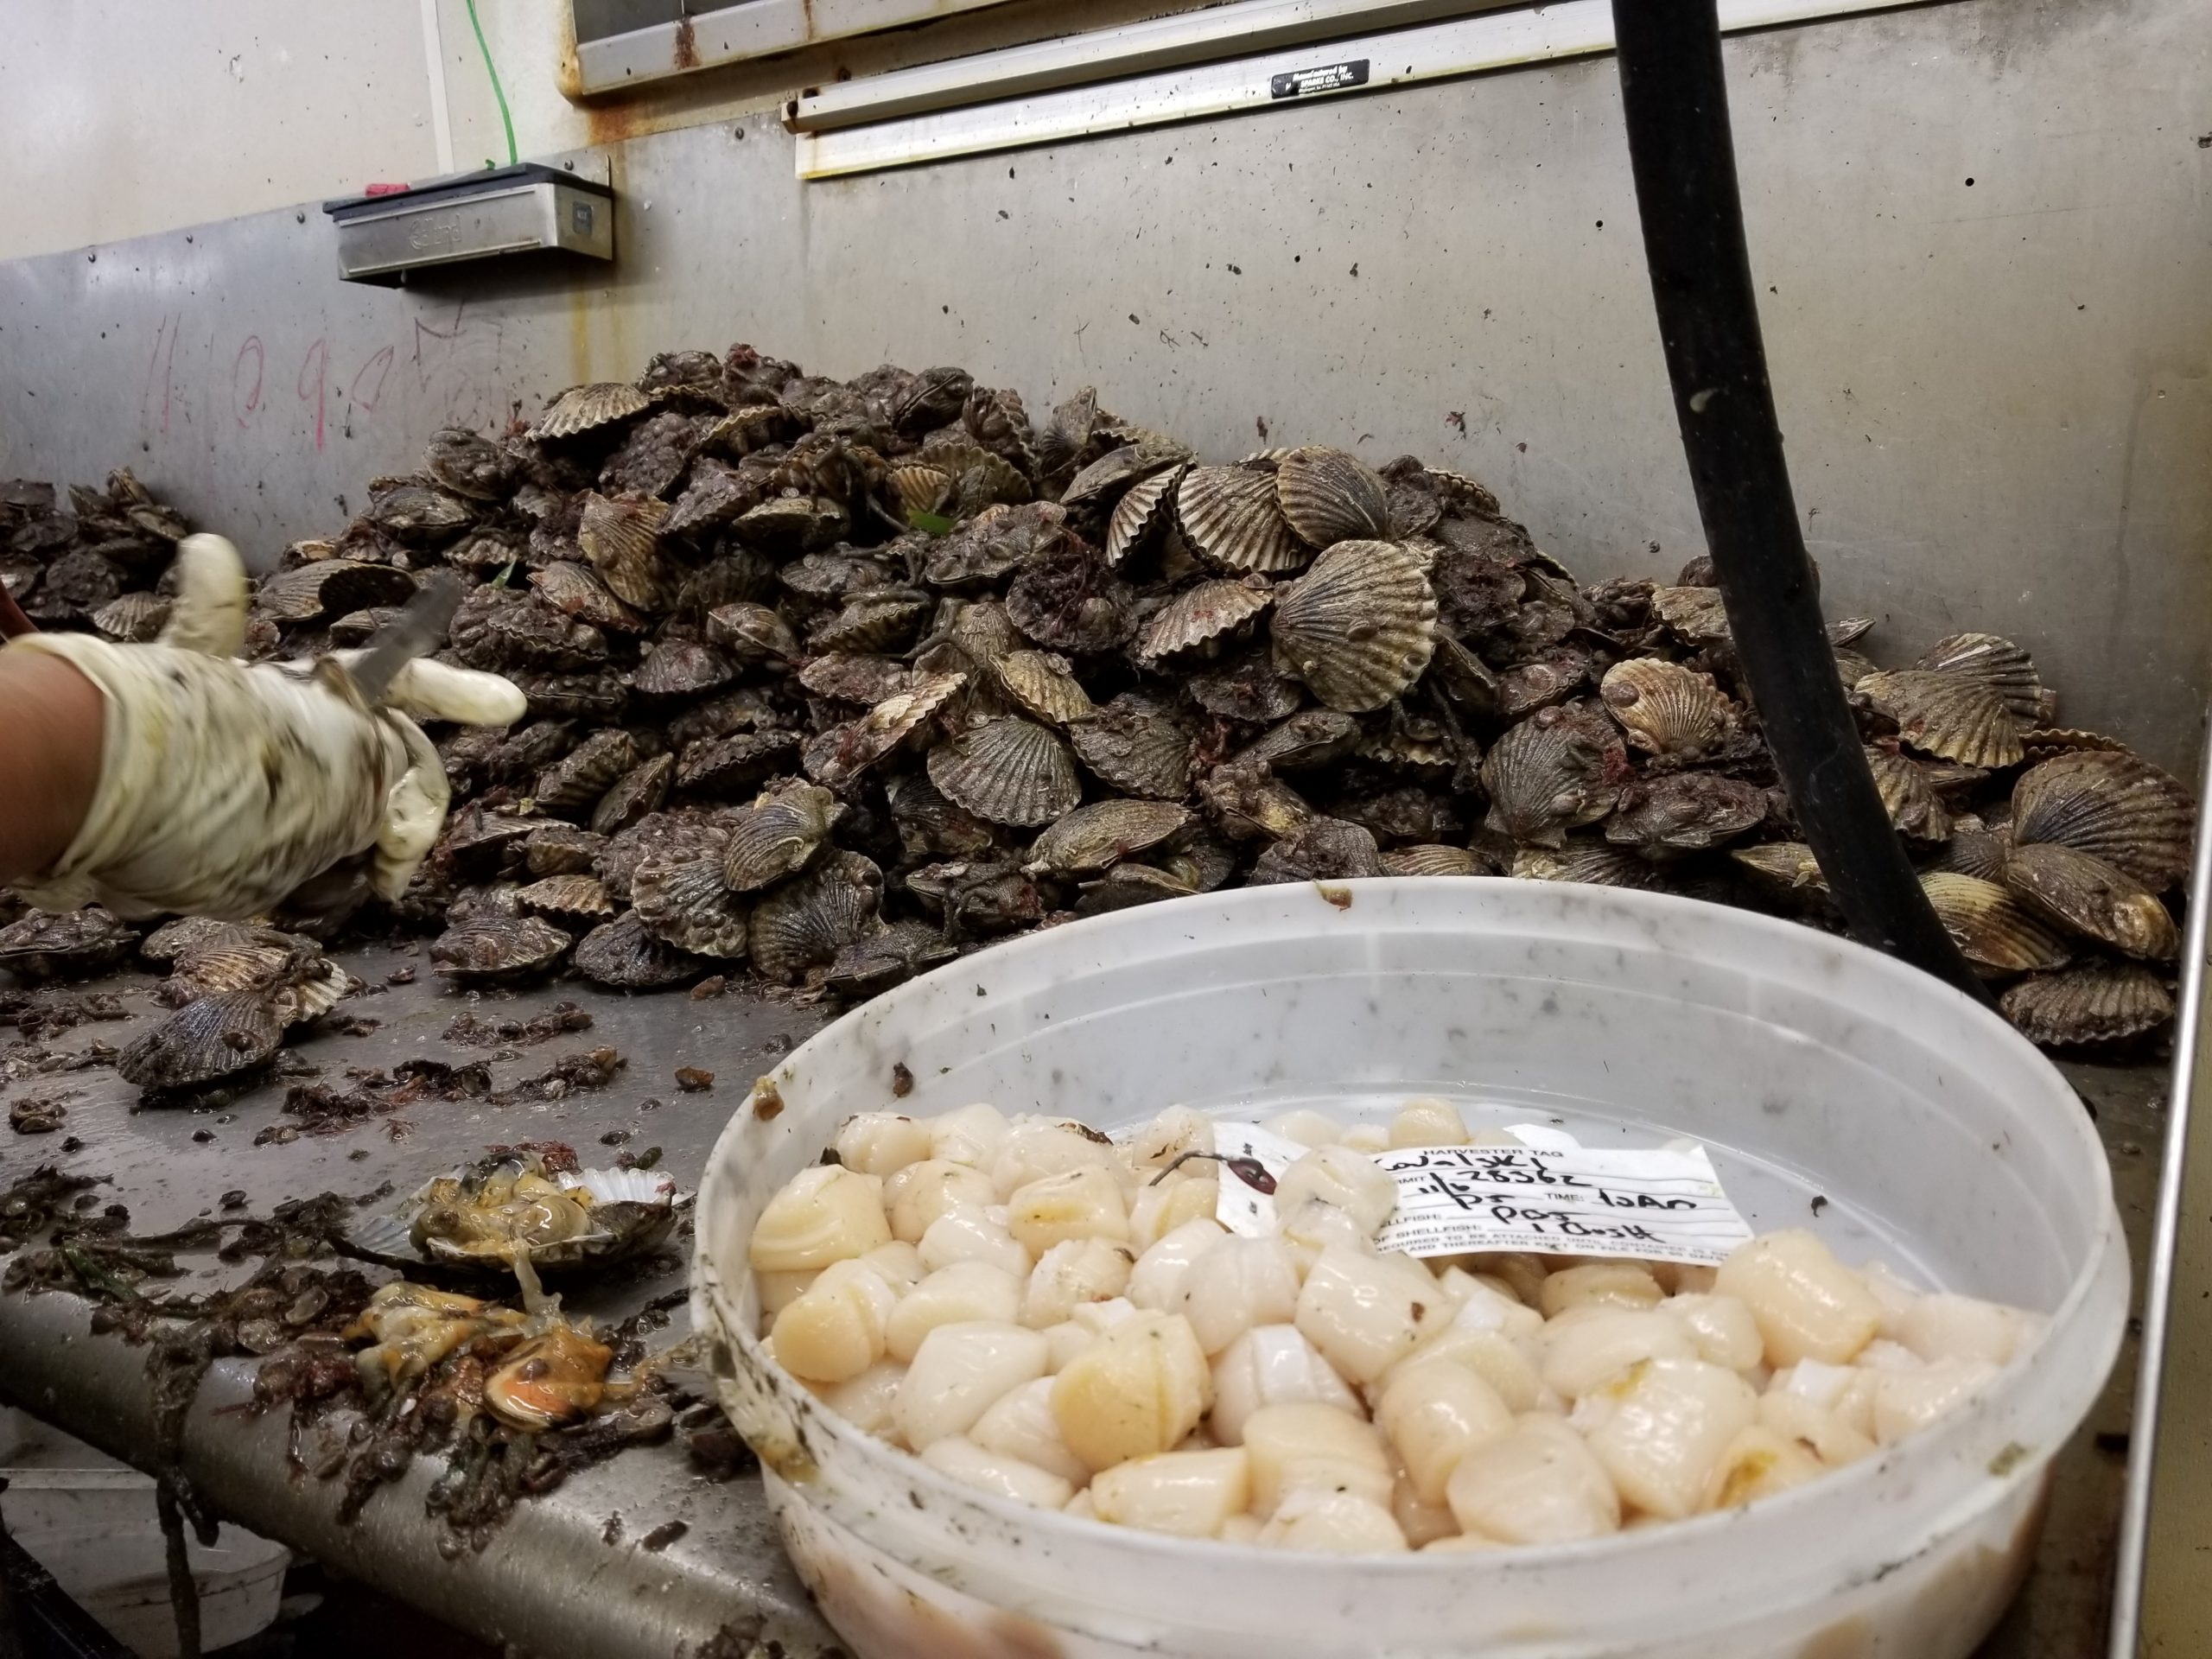 Over 100,000 pounds of scallops are harvested each year from the Peconic Bay estuary. GREG WEHNER